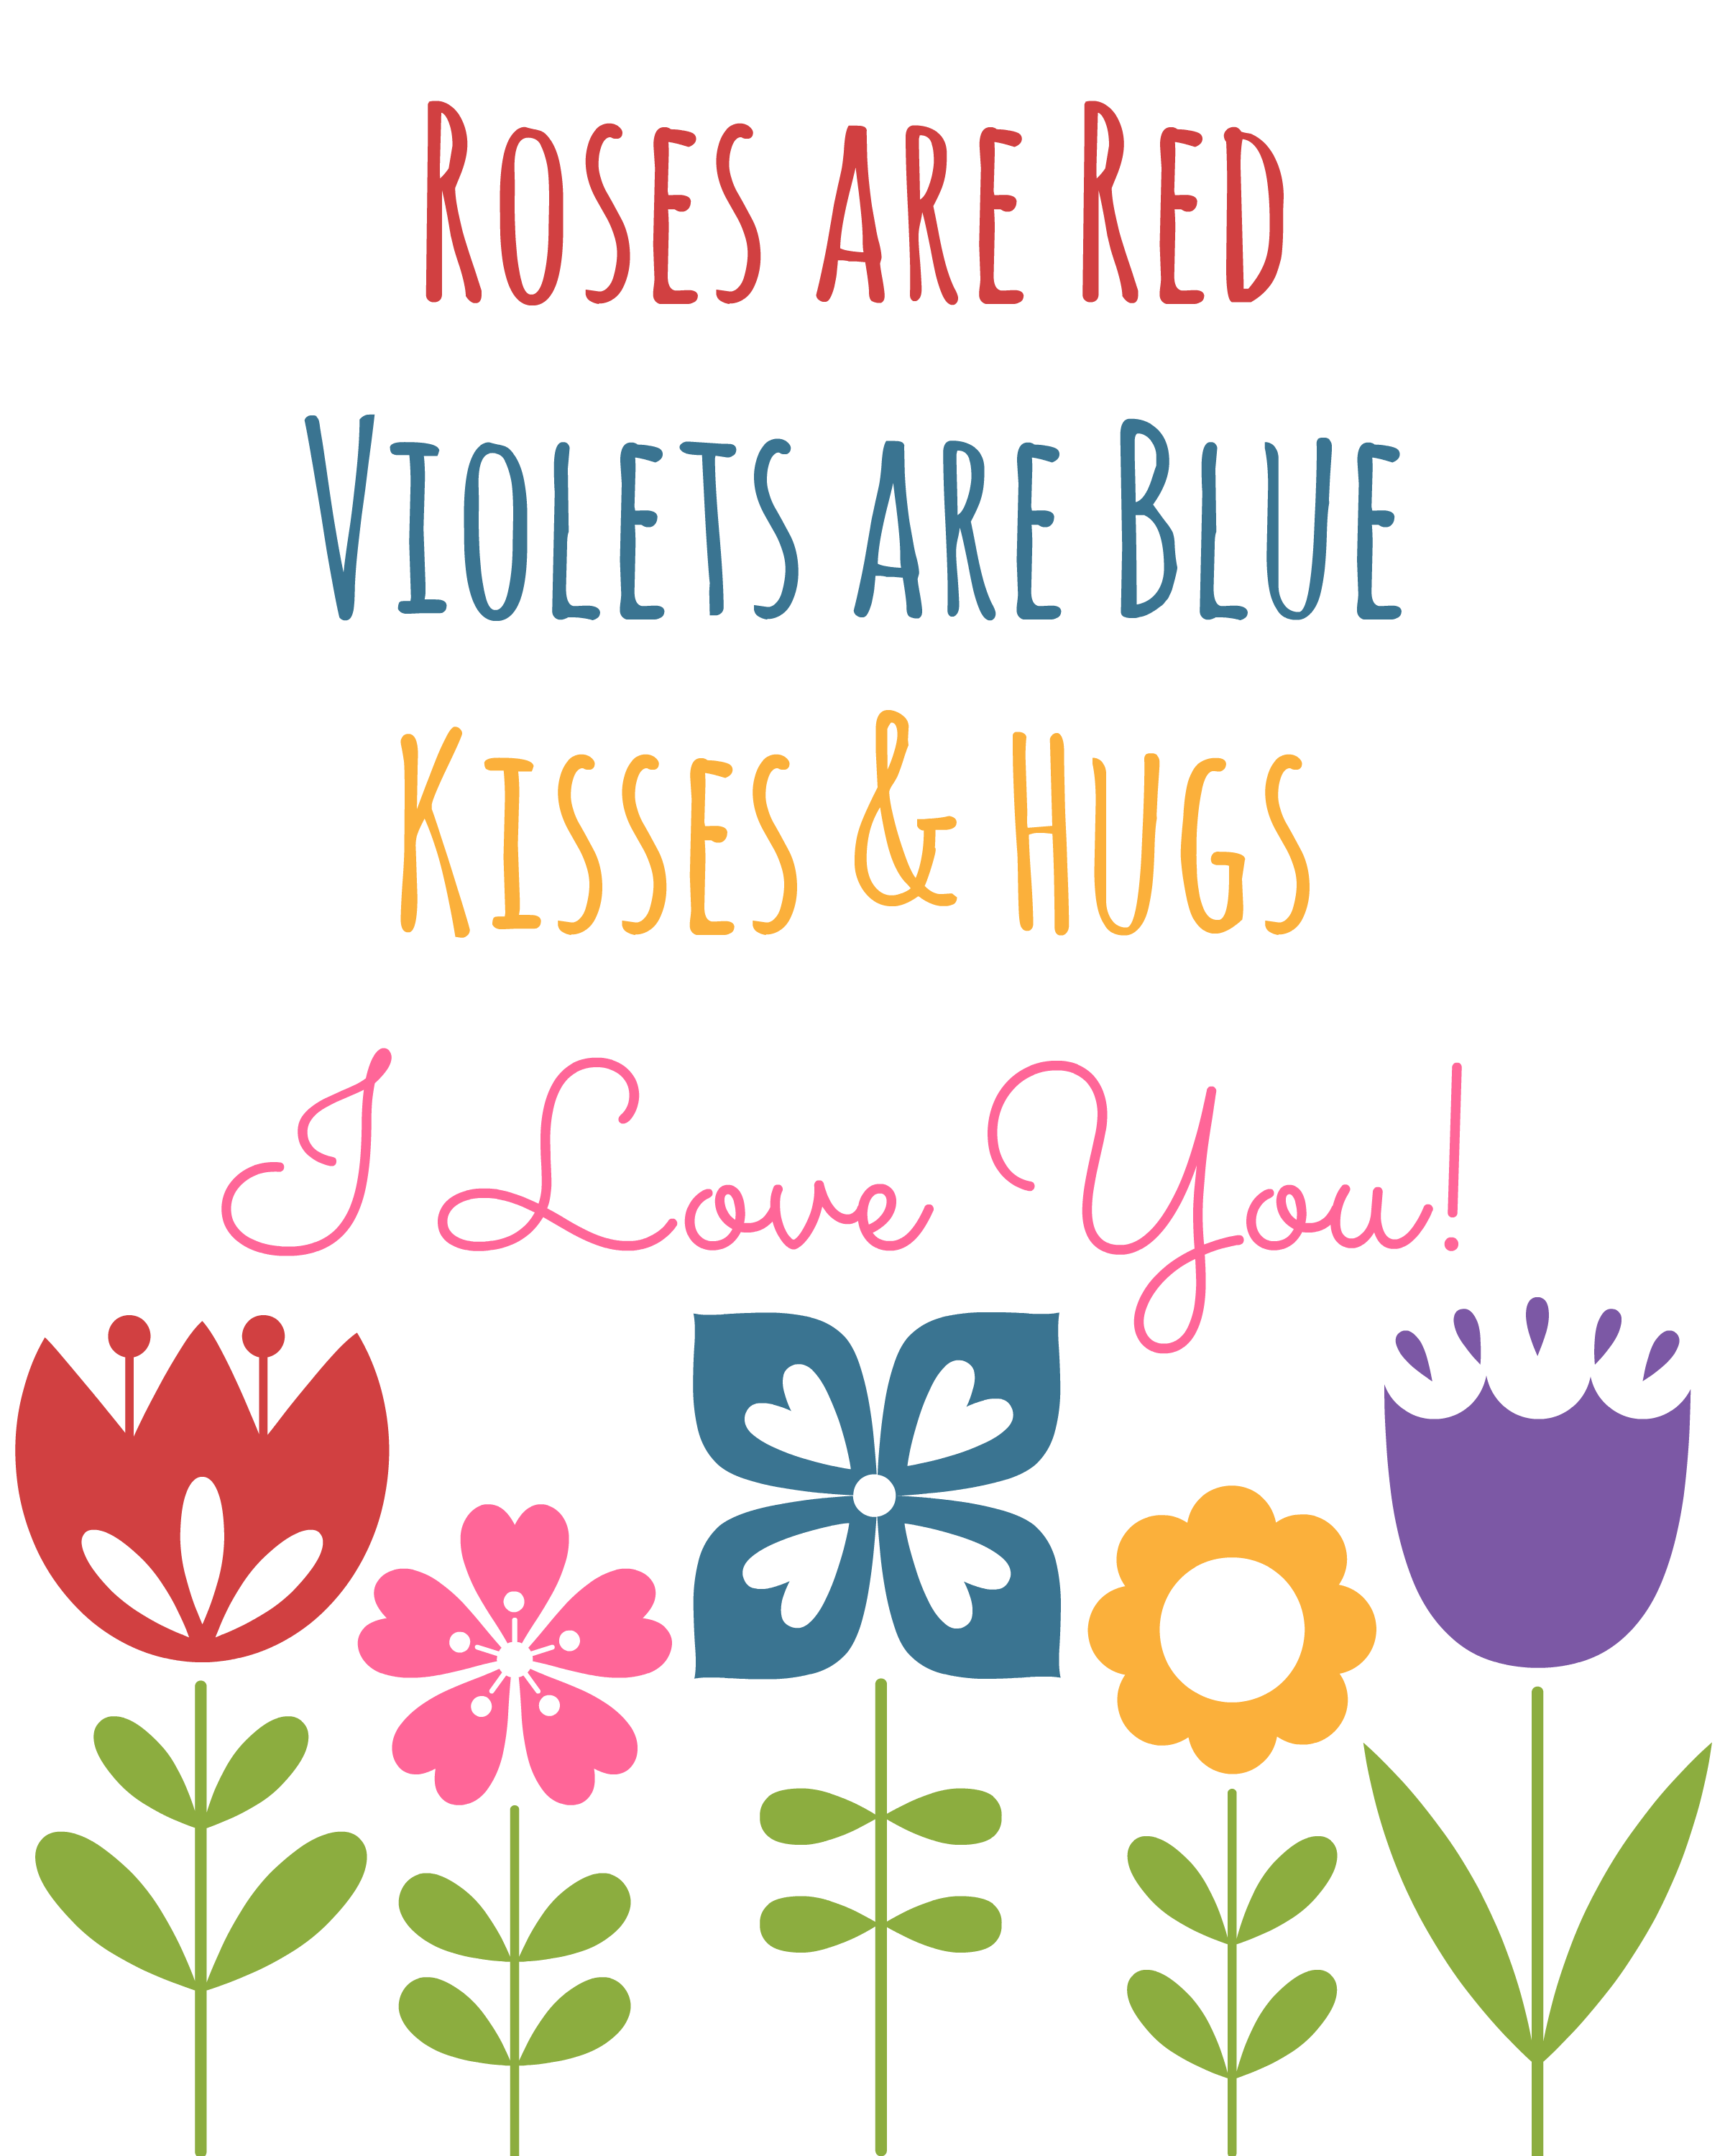 Roses Are Red Valentine S Day Printable Art A Mom S Take Roses Are Red Poems Roses Are Red Violets Are Blue Red Roses